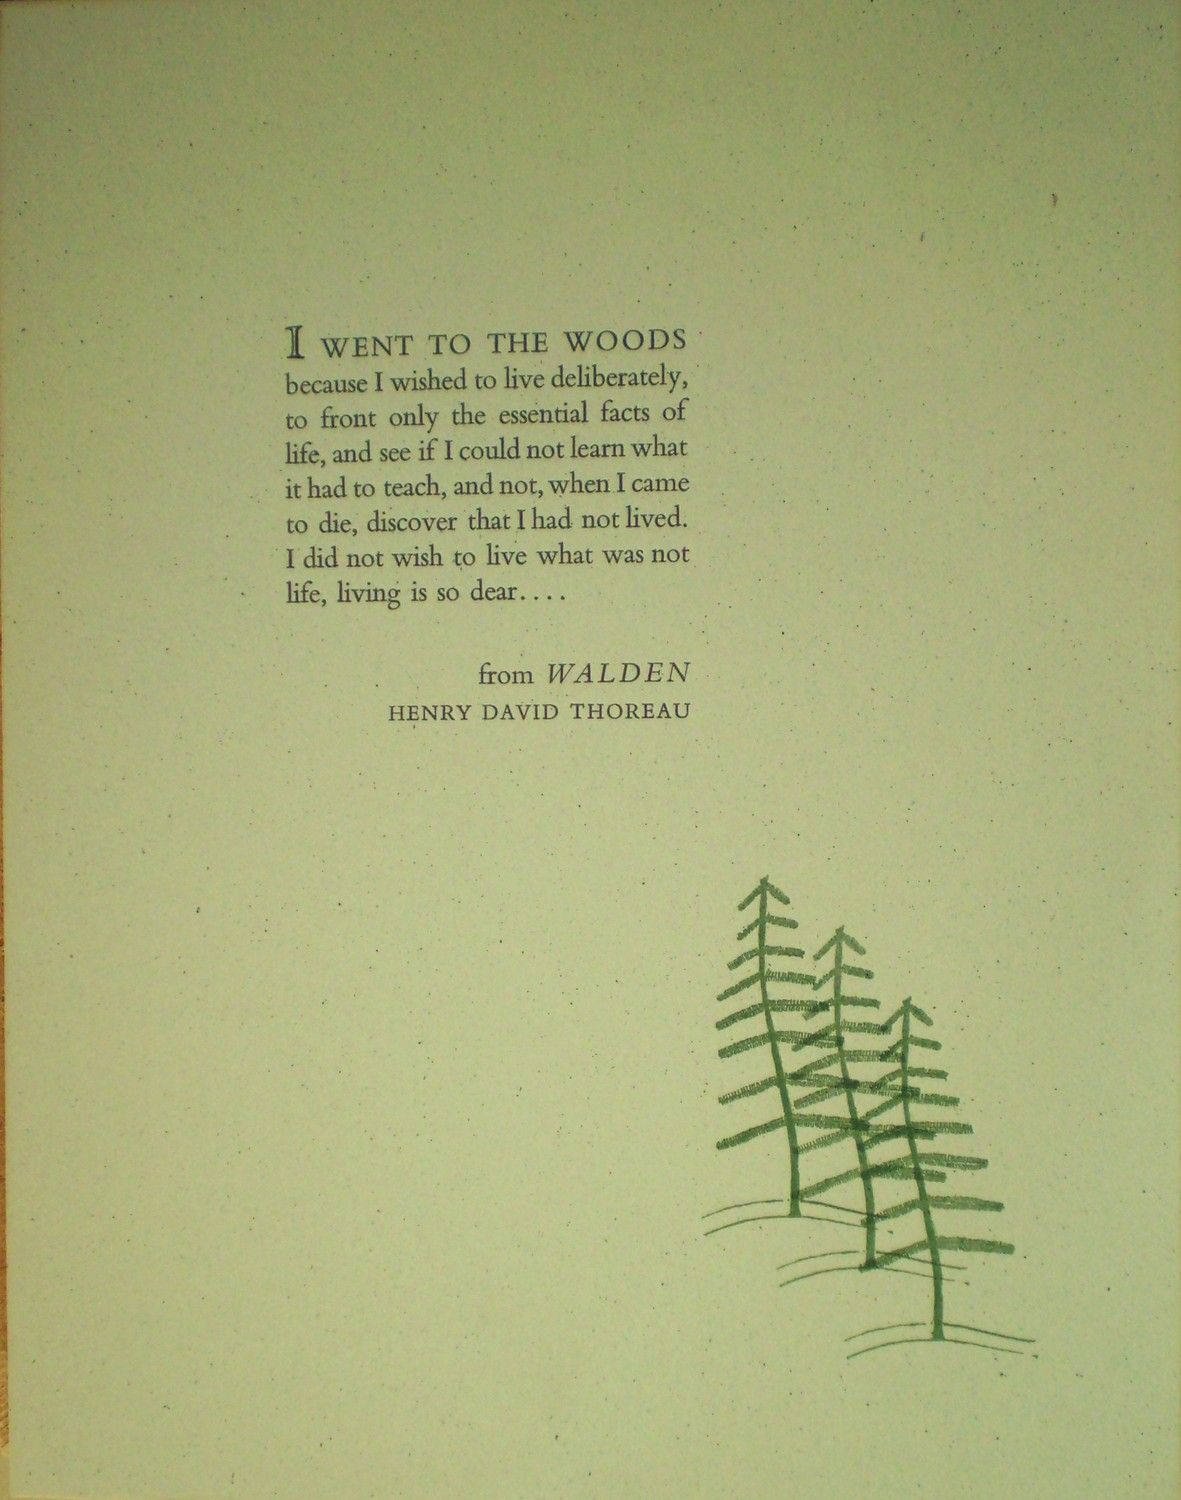 i went to the woods walden by henry david thoreau